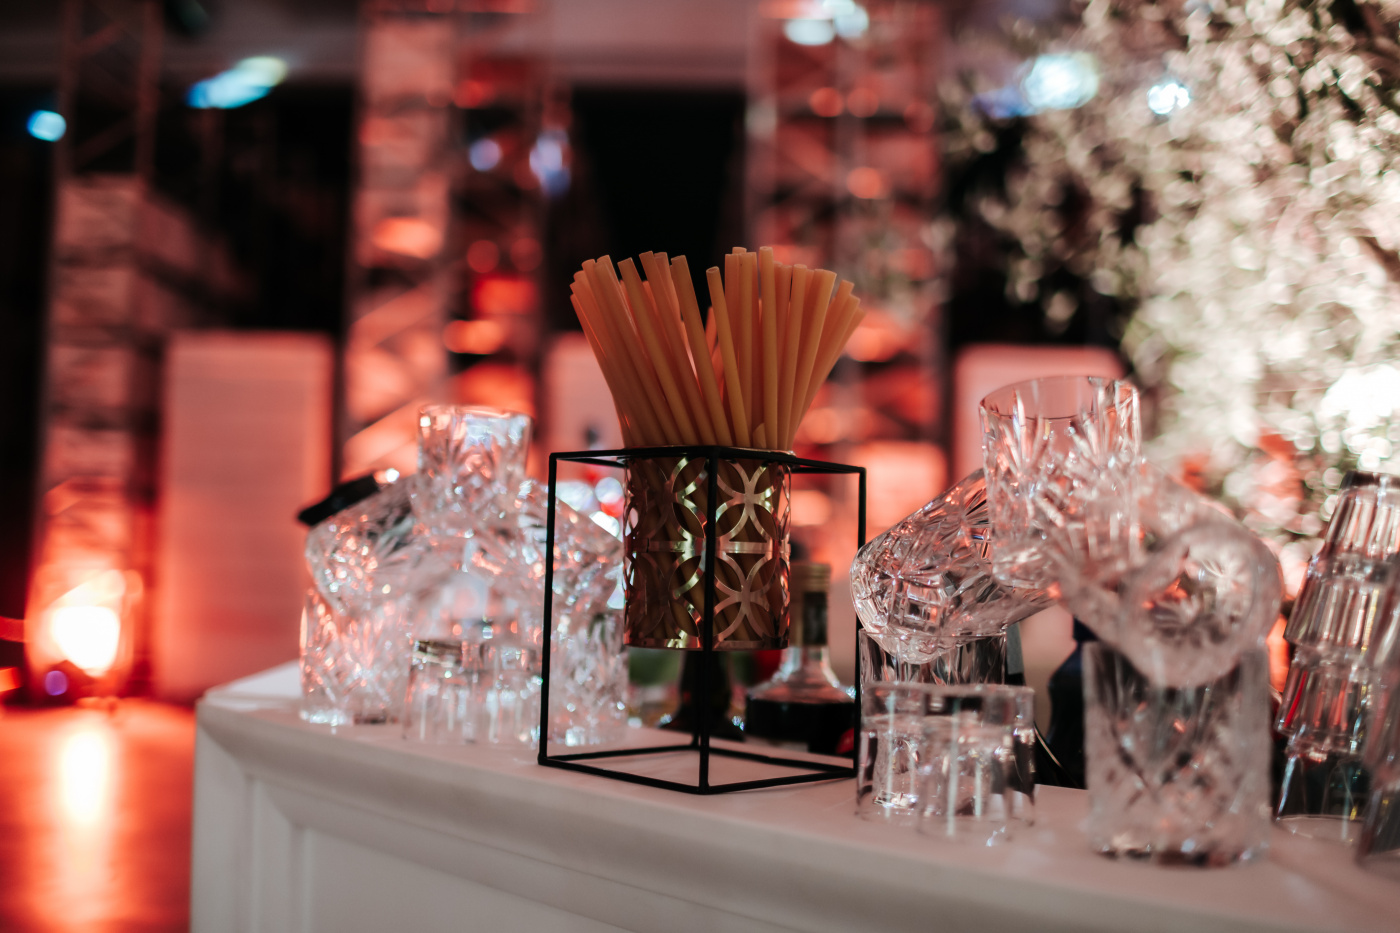 American bar details for corporate event